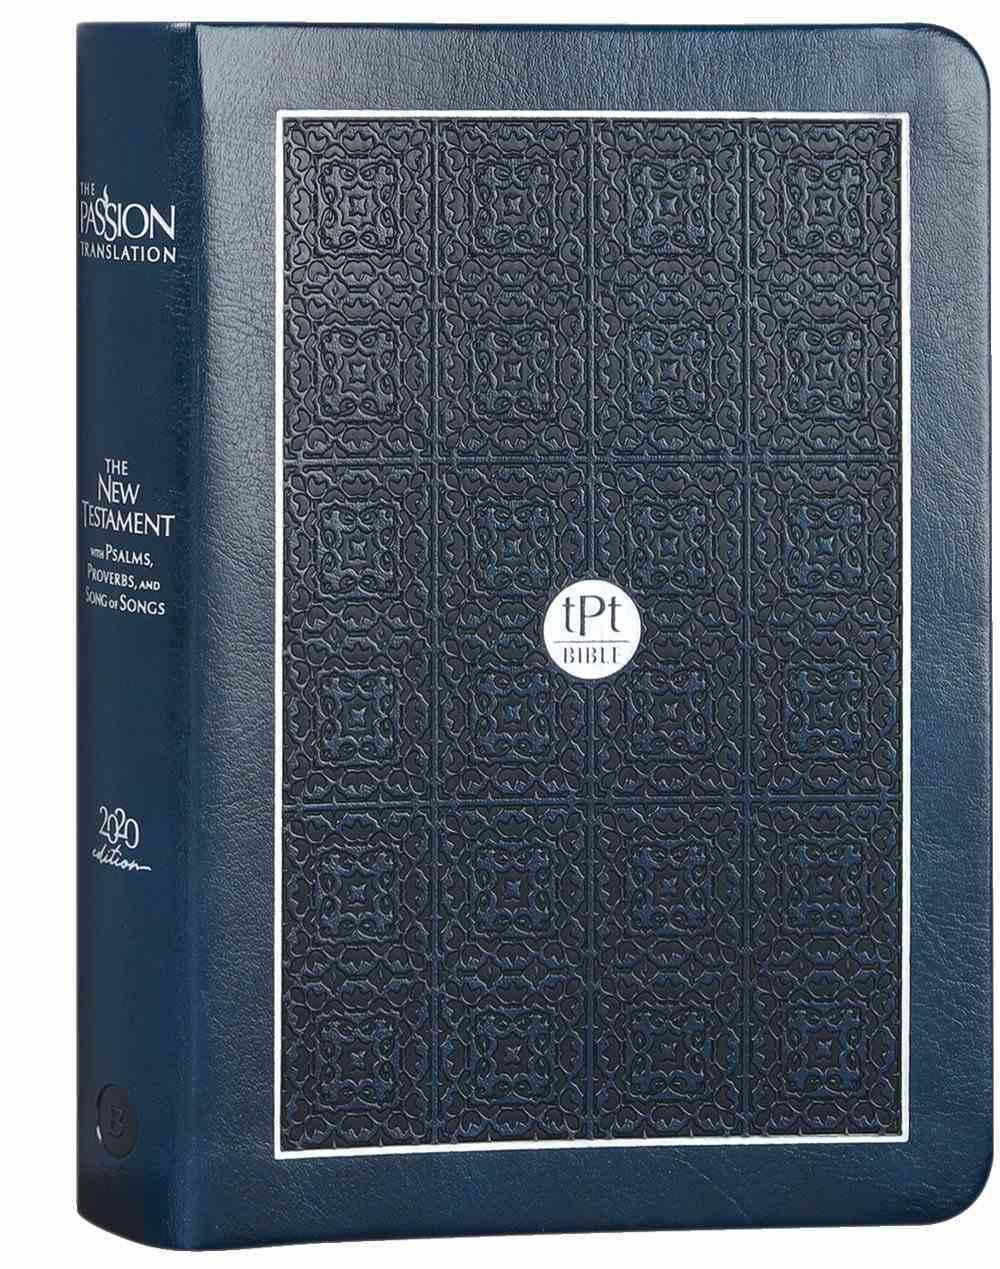 TPT New Testament Compact Navy (Black Letter Edition) (With Psalms, Proverbs And The Song Of Songs) Imitation Leather